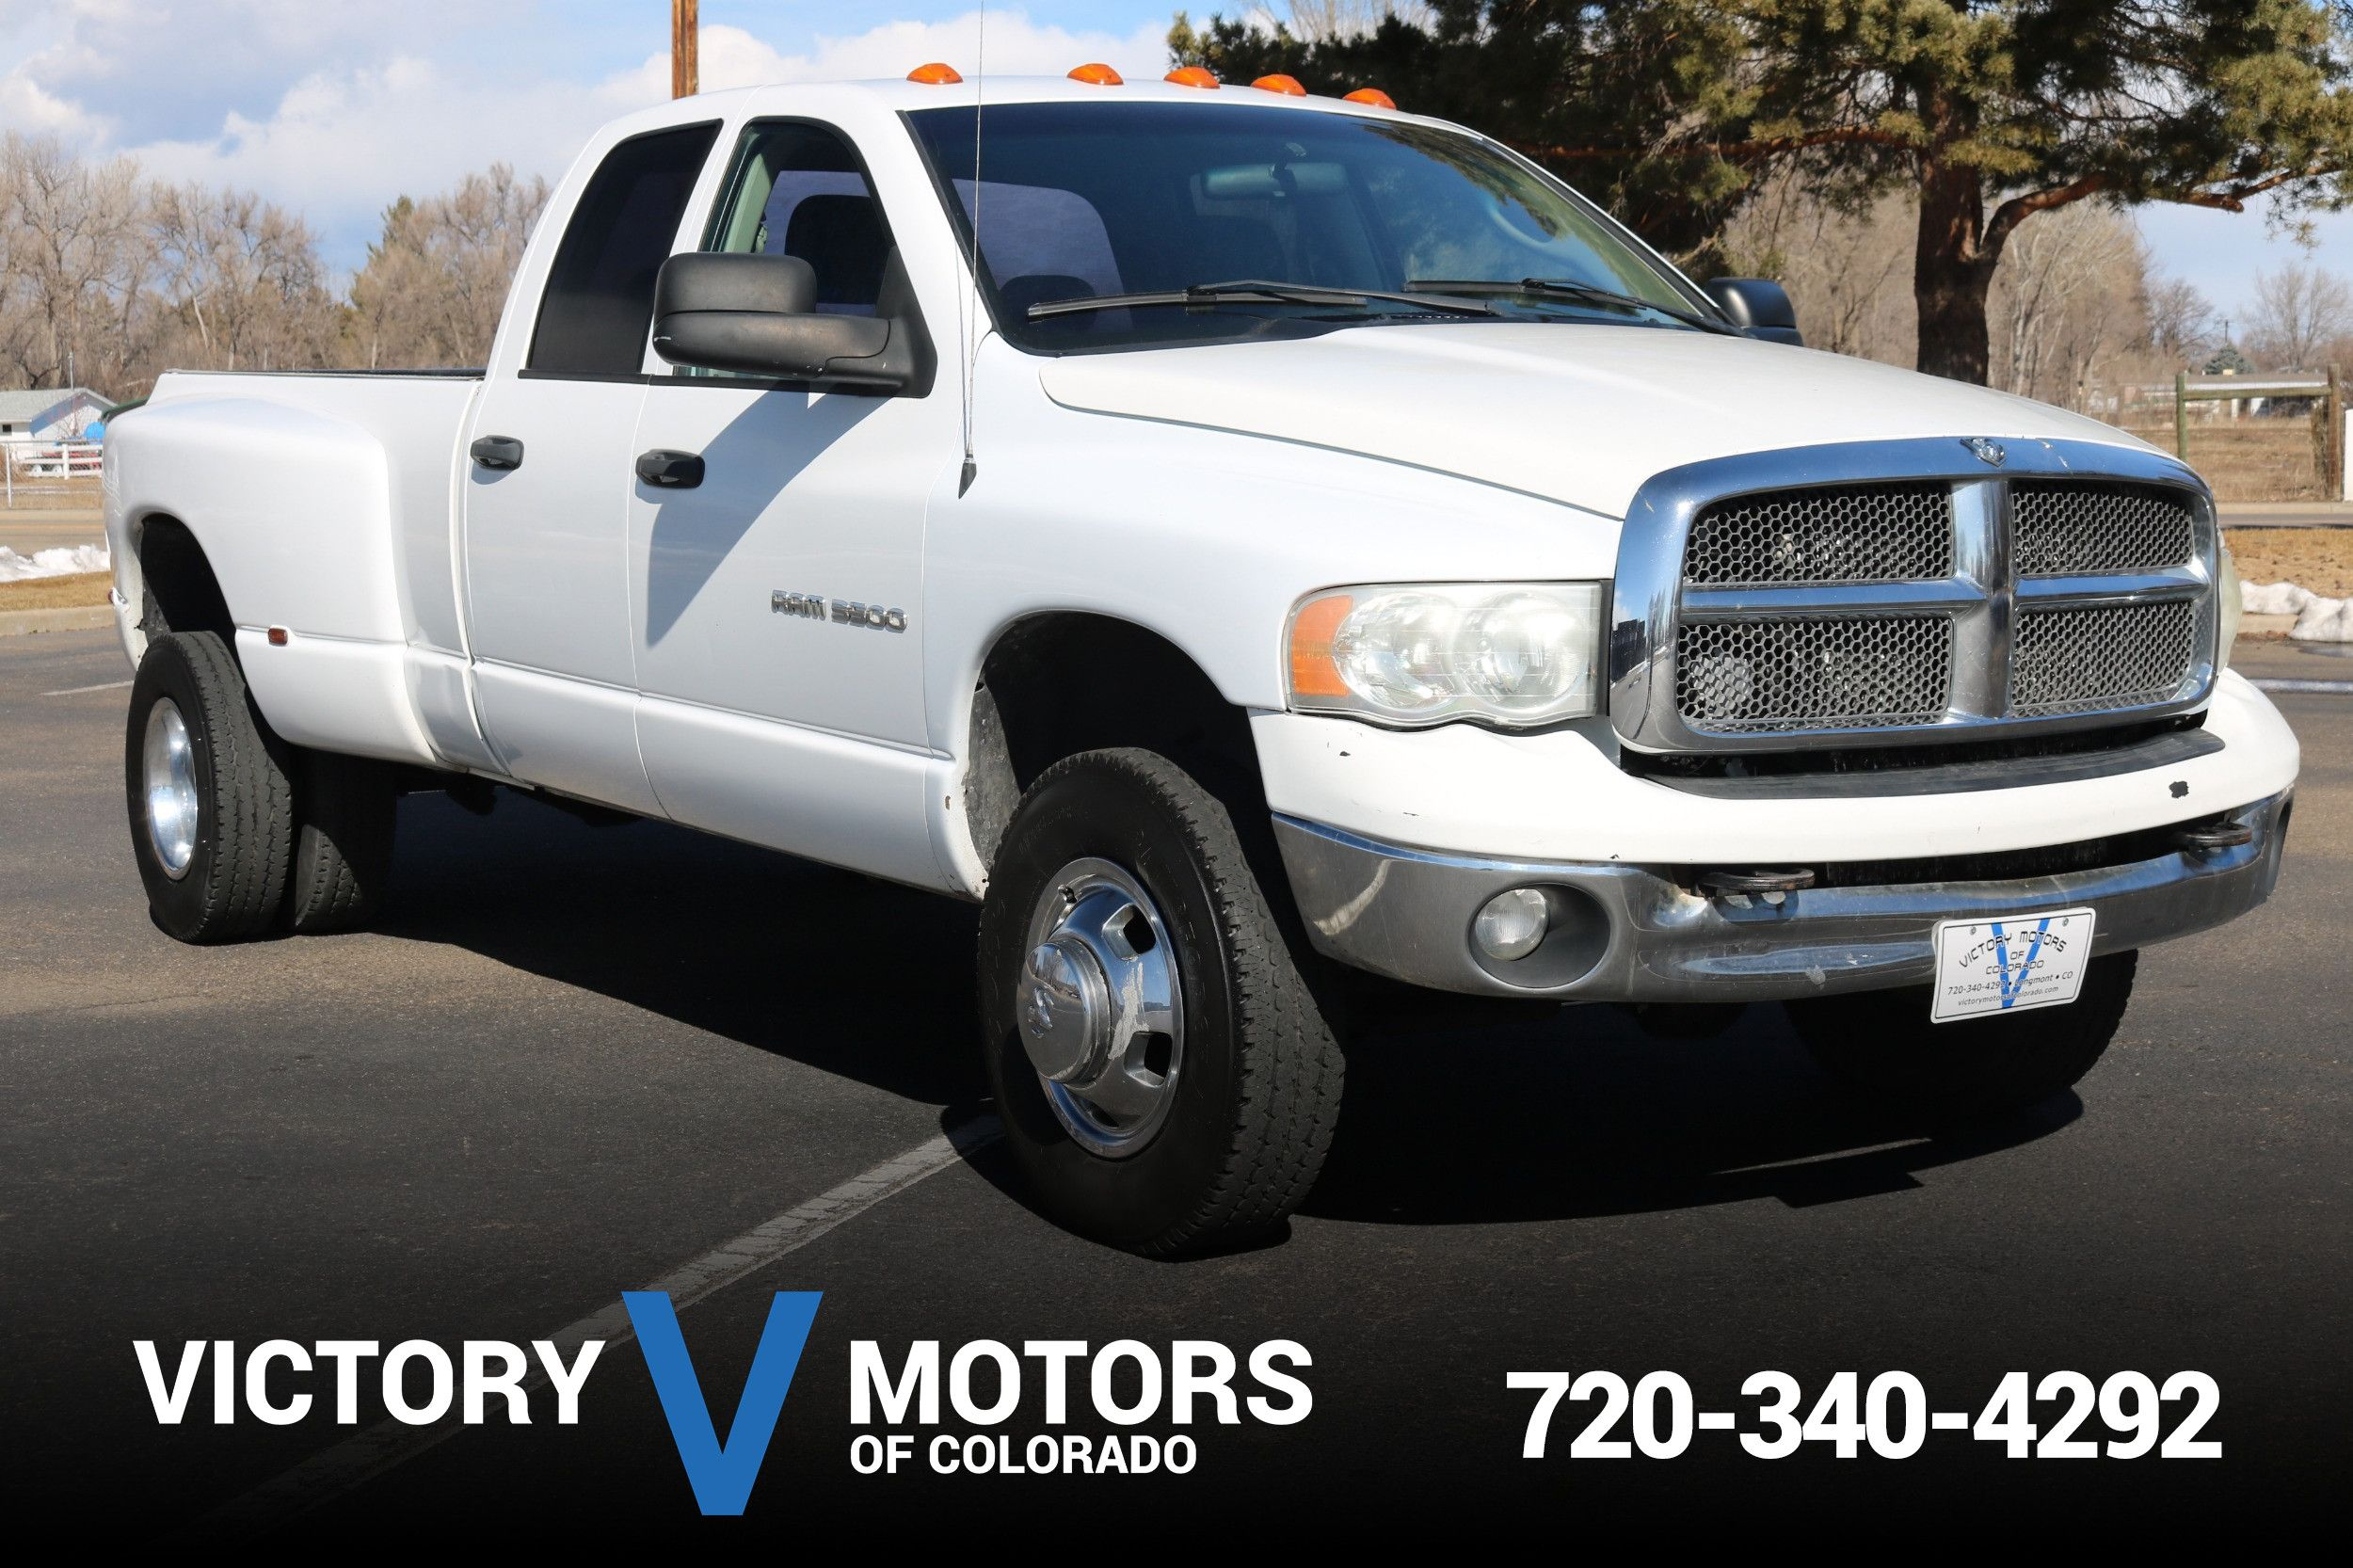 Used Cars And Trucks Longmont Co 80501 Victory Motors Of Colorado 2010 Dodge Caravan Fuel Filter 2004 Ram 3500 Slt